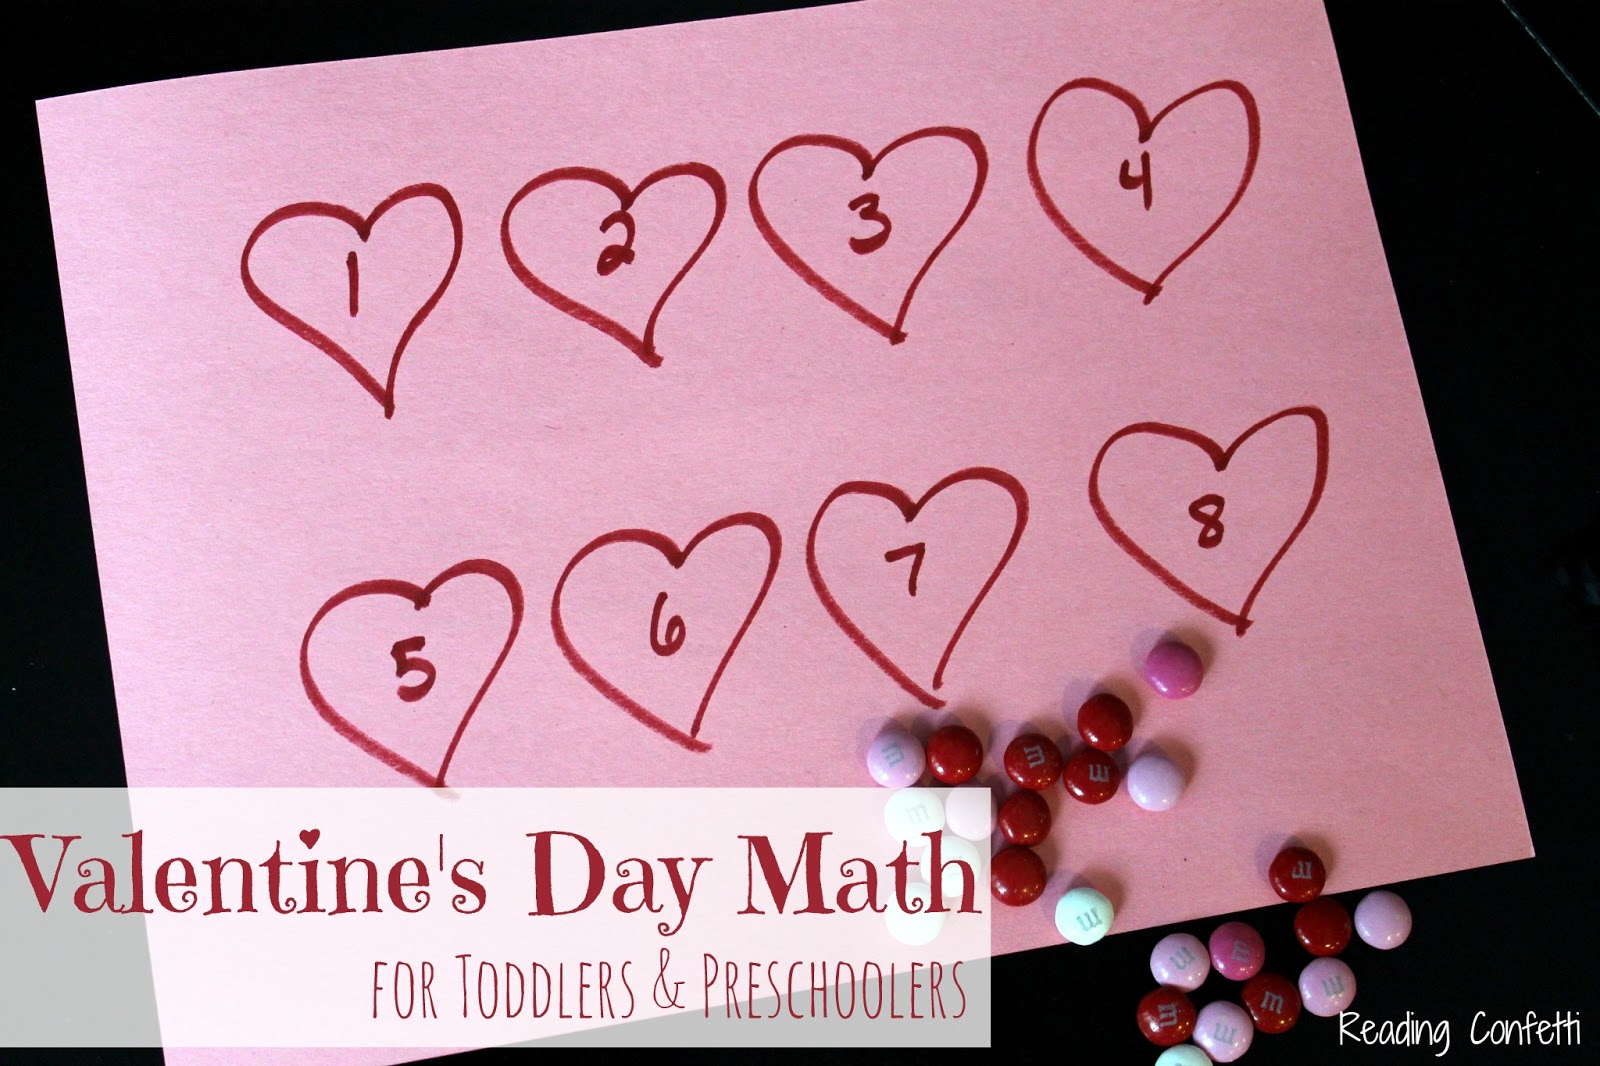 Valentines Day Math for Toddlers and Preschoolers  Reading Confetti